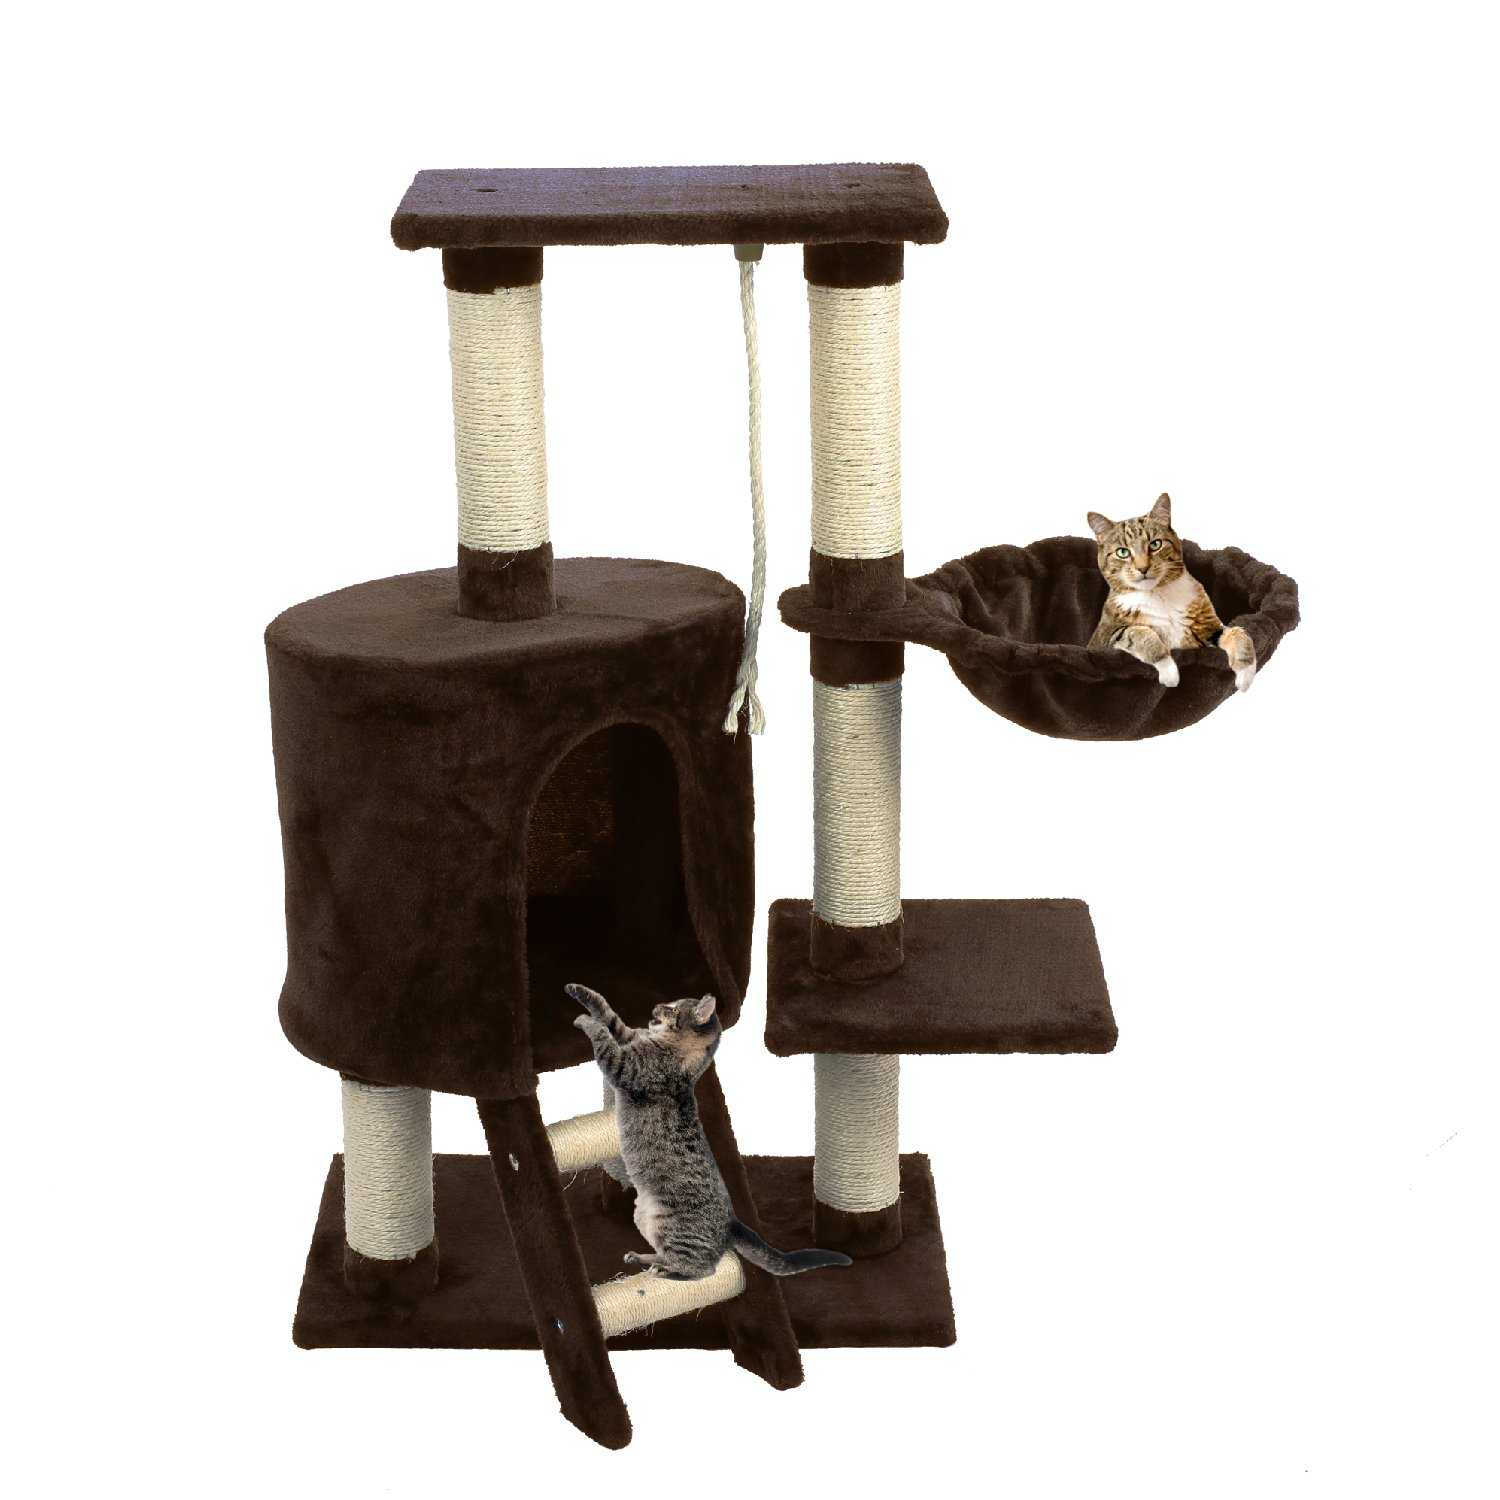 Cat Tree With House Condo Tower Pet Scratching Posts Unique Kitten Perch Furniture Natural Sisal Kitty Climbing Toys Activity Tree With Playhouse In The Corner Window Perches, 38 inches, Brown